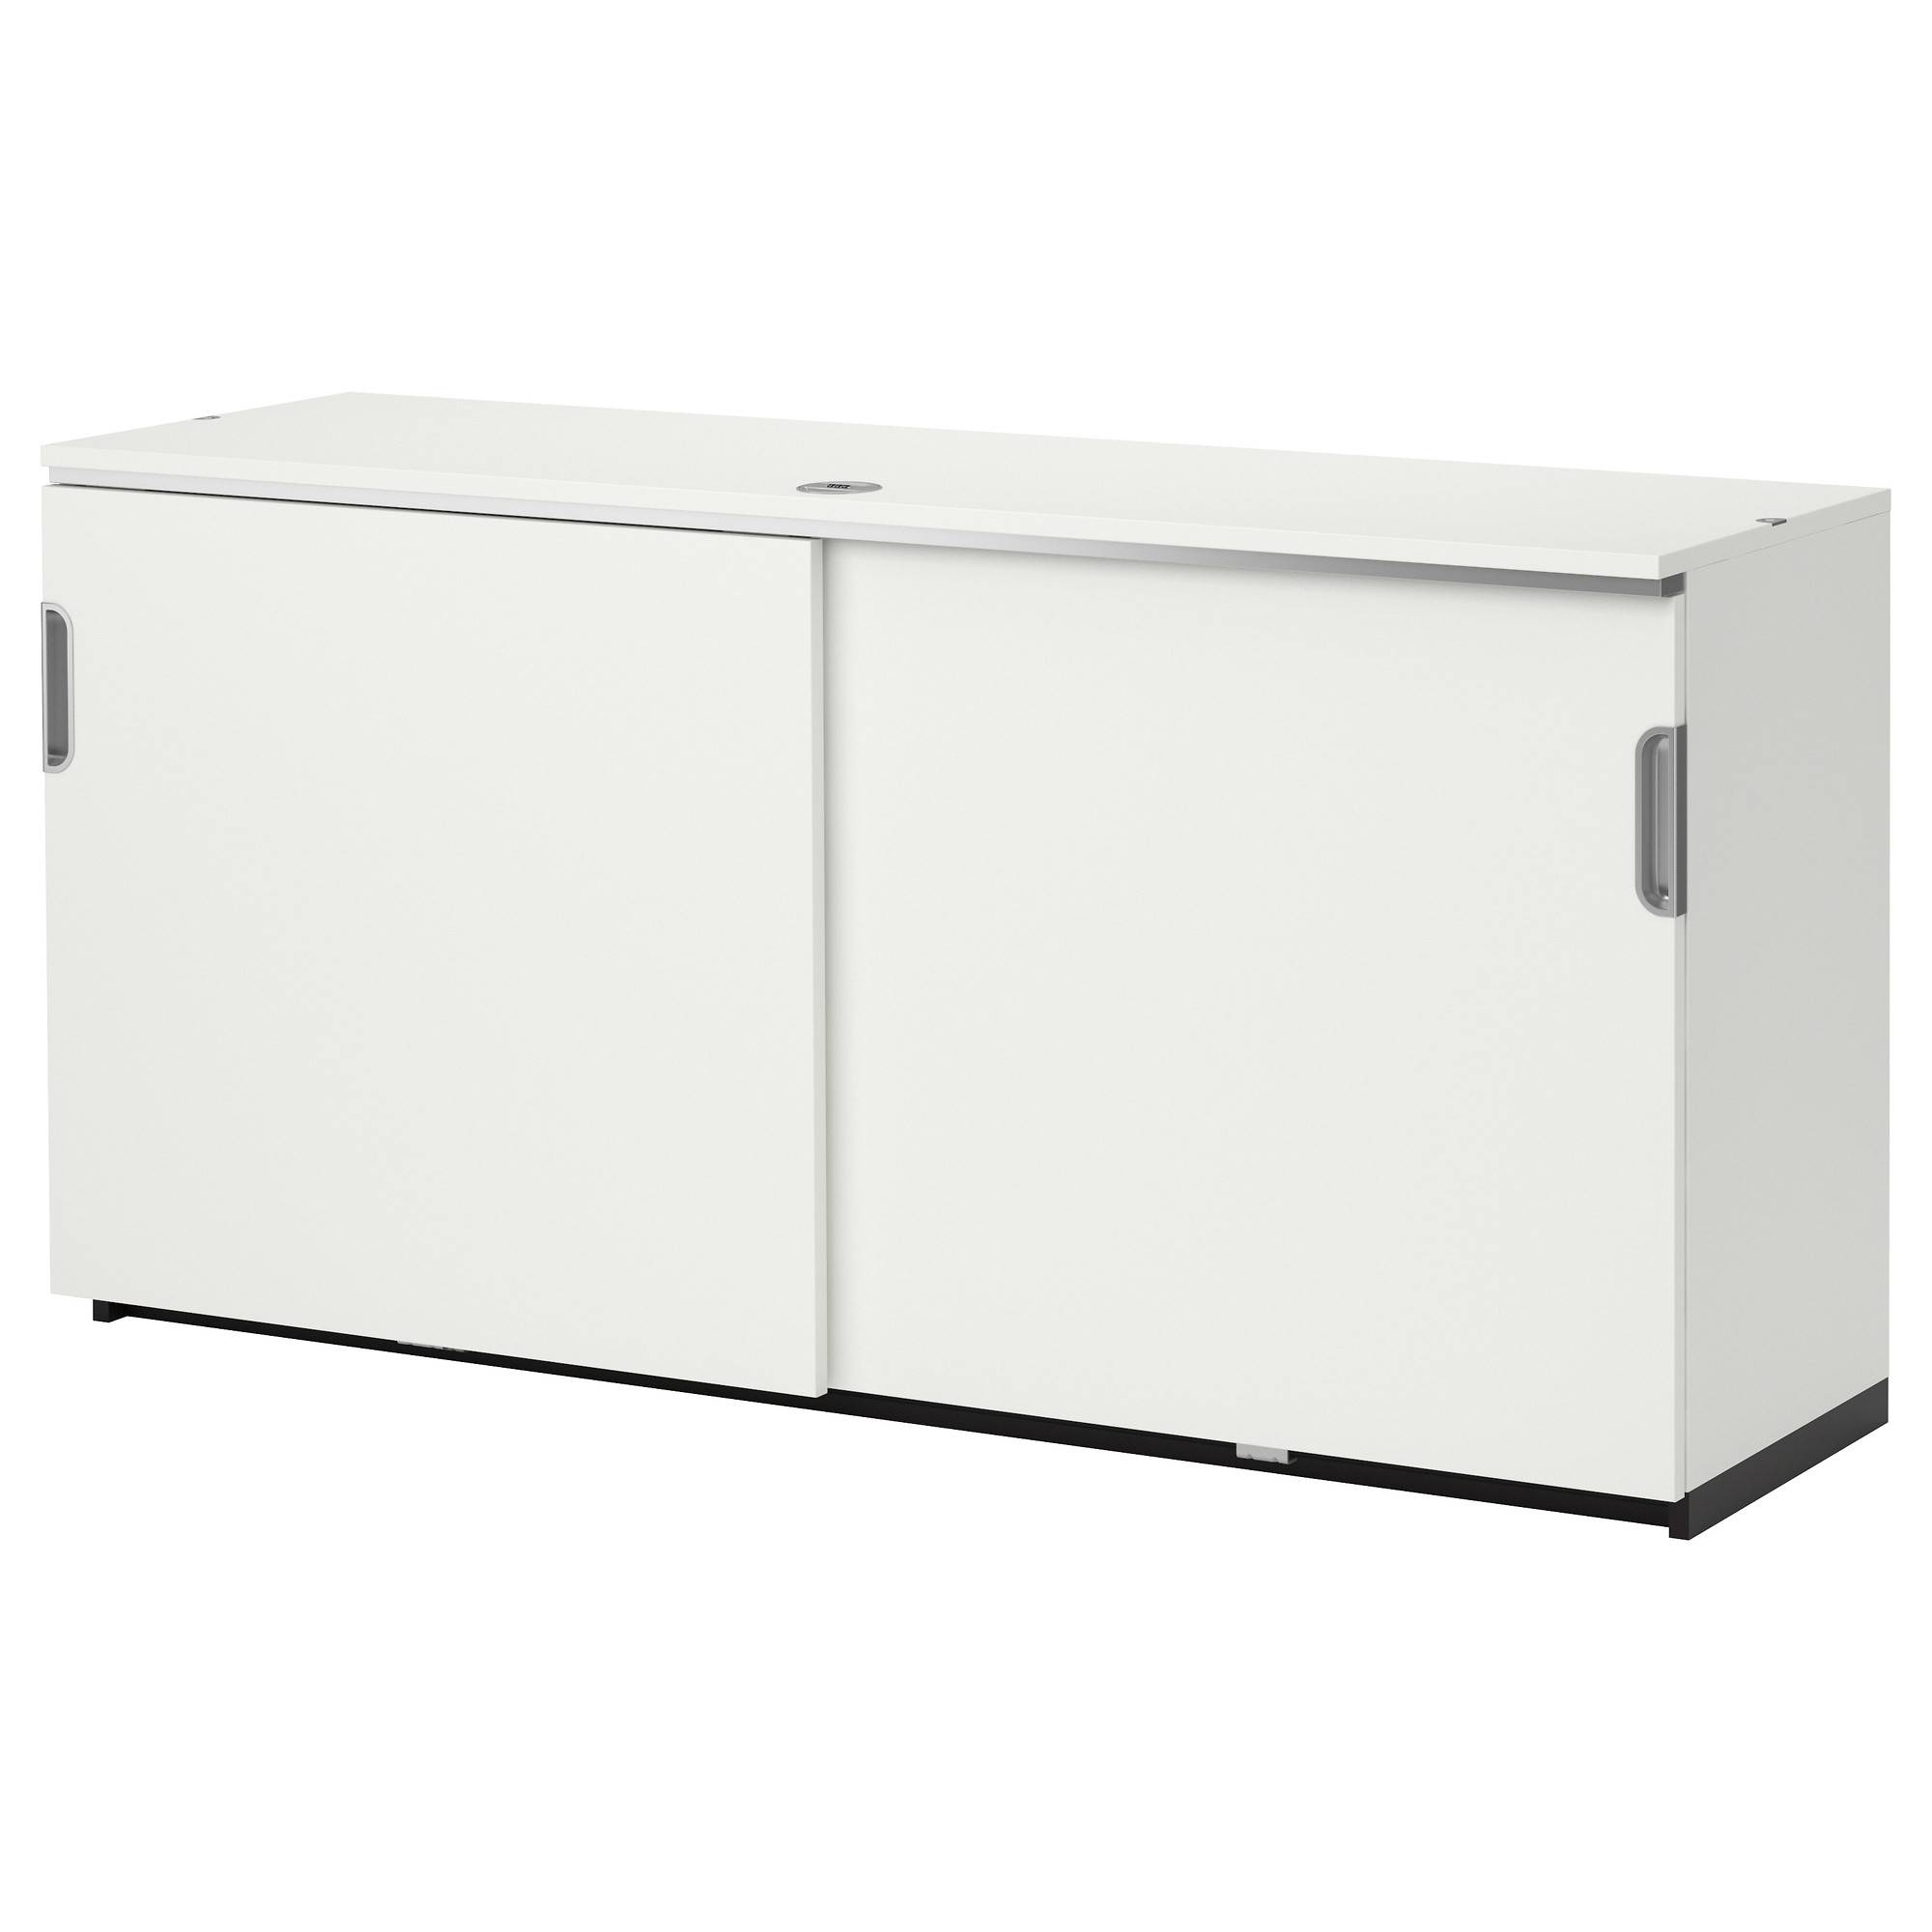 Filing Cabinets - Filing Cabinets For Home Office - Ikea with Shallow Sideboard Cabinets (Image 14 of 30)